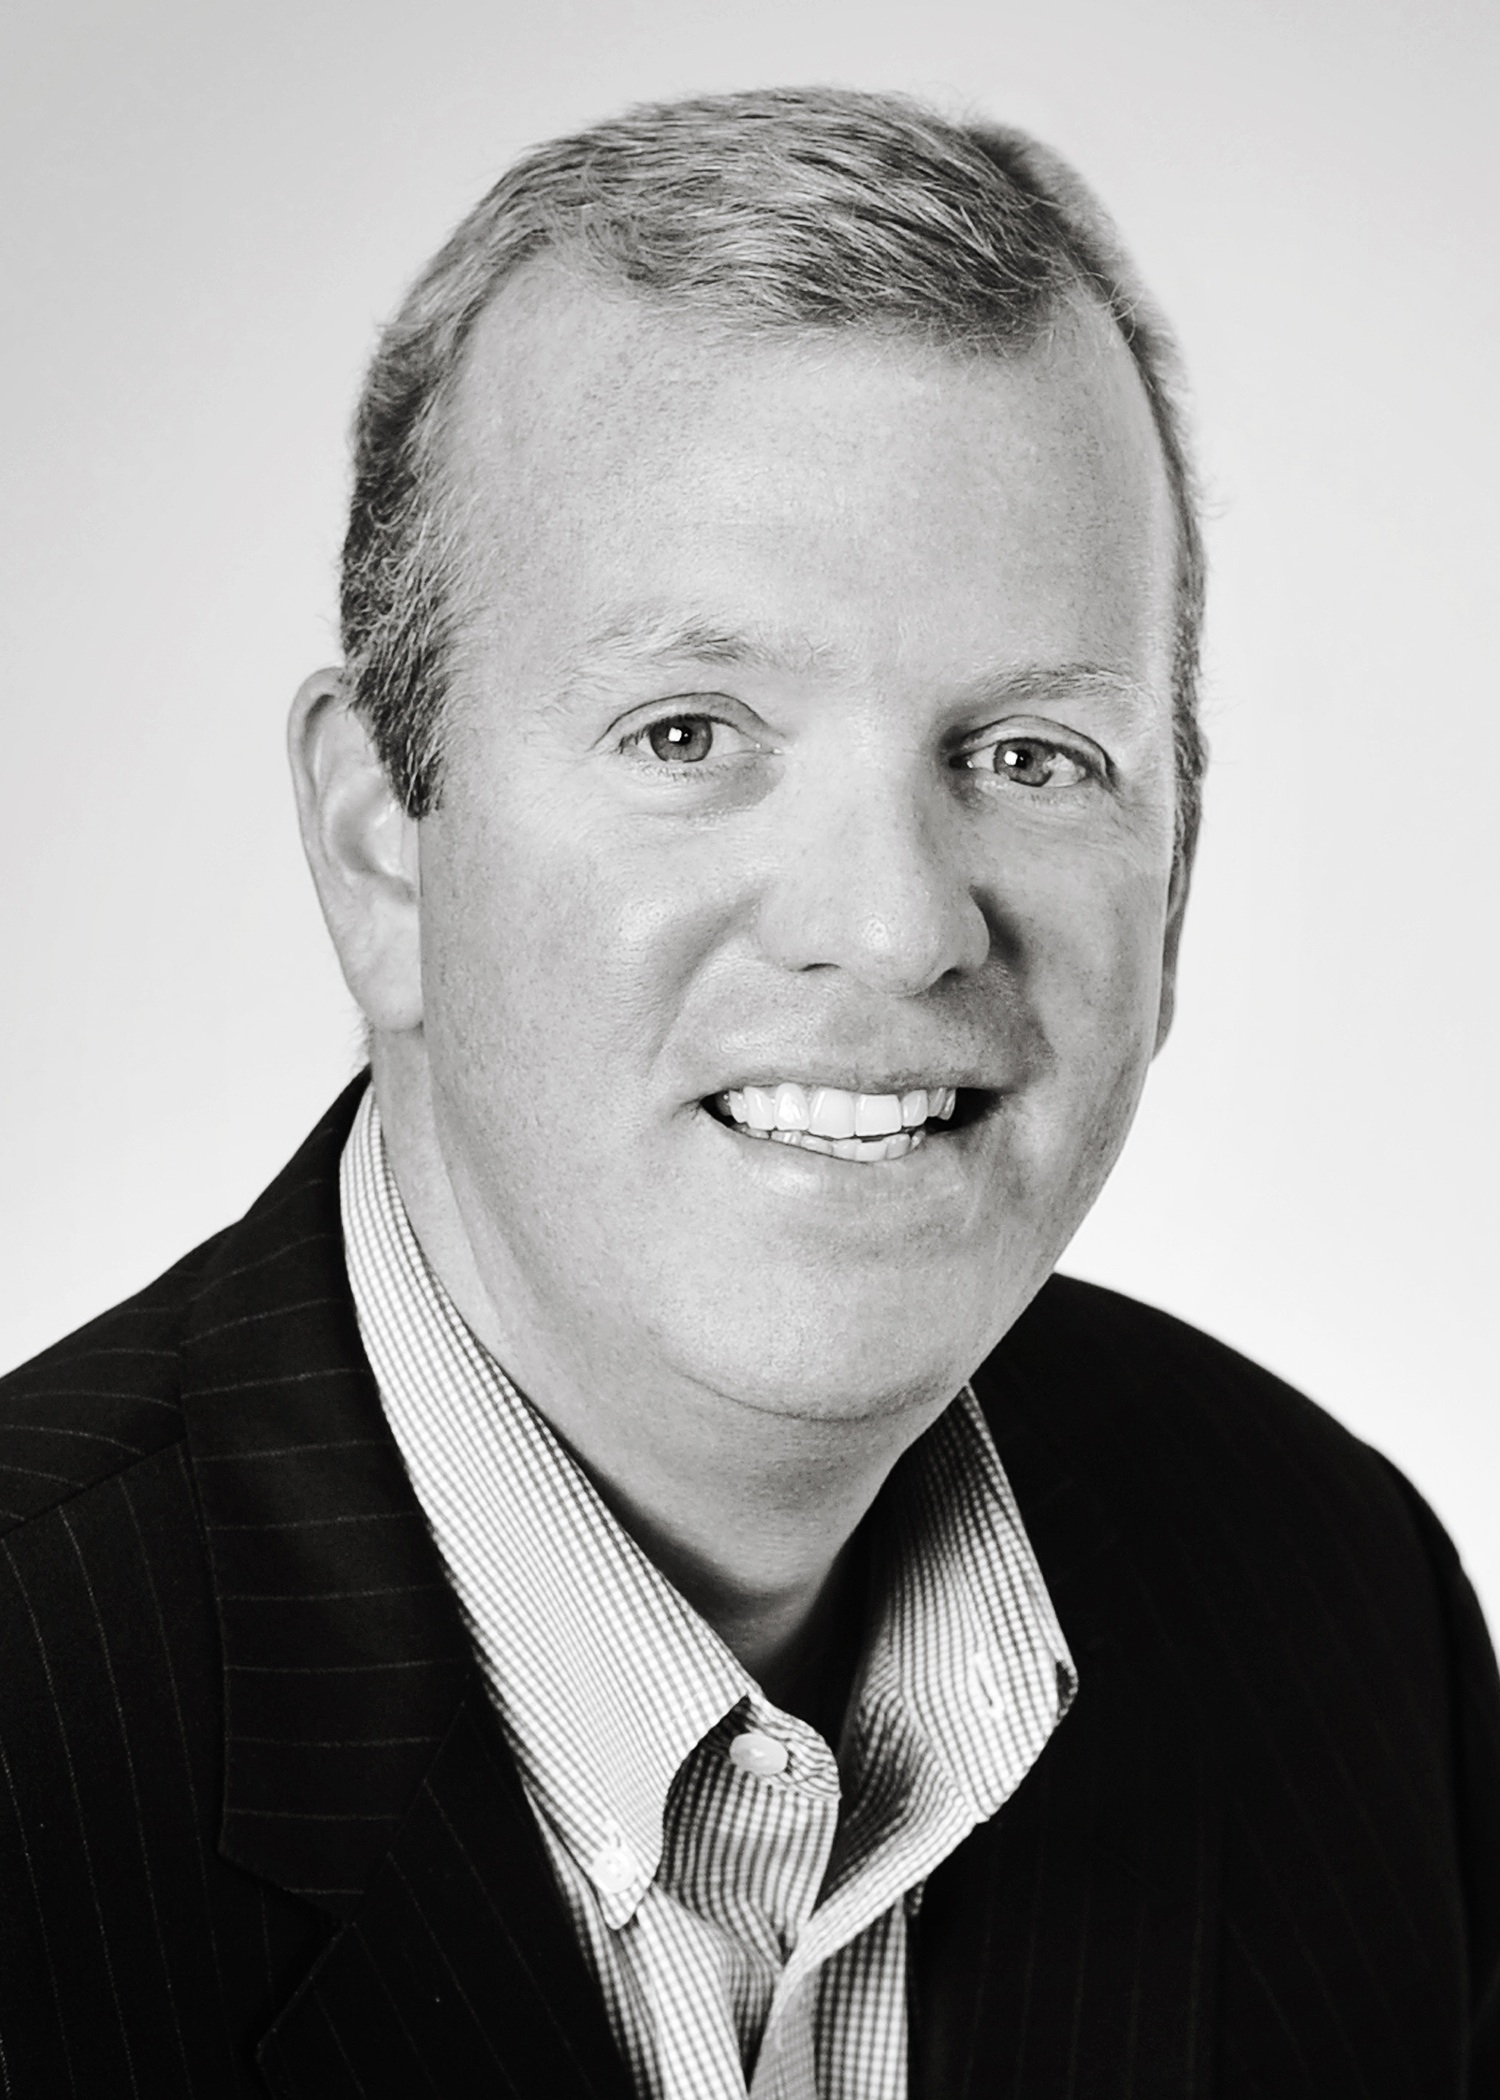 Jon Squire, Senior Vice President of Business Development and Strategy